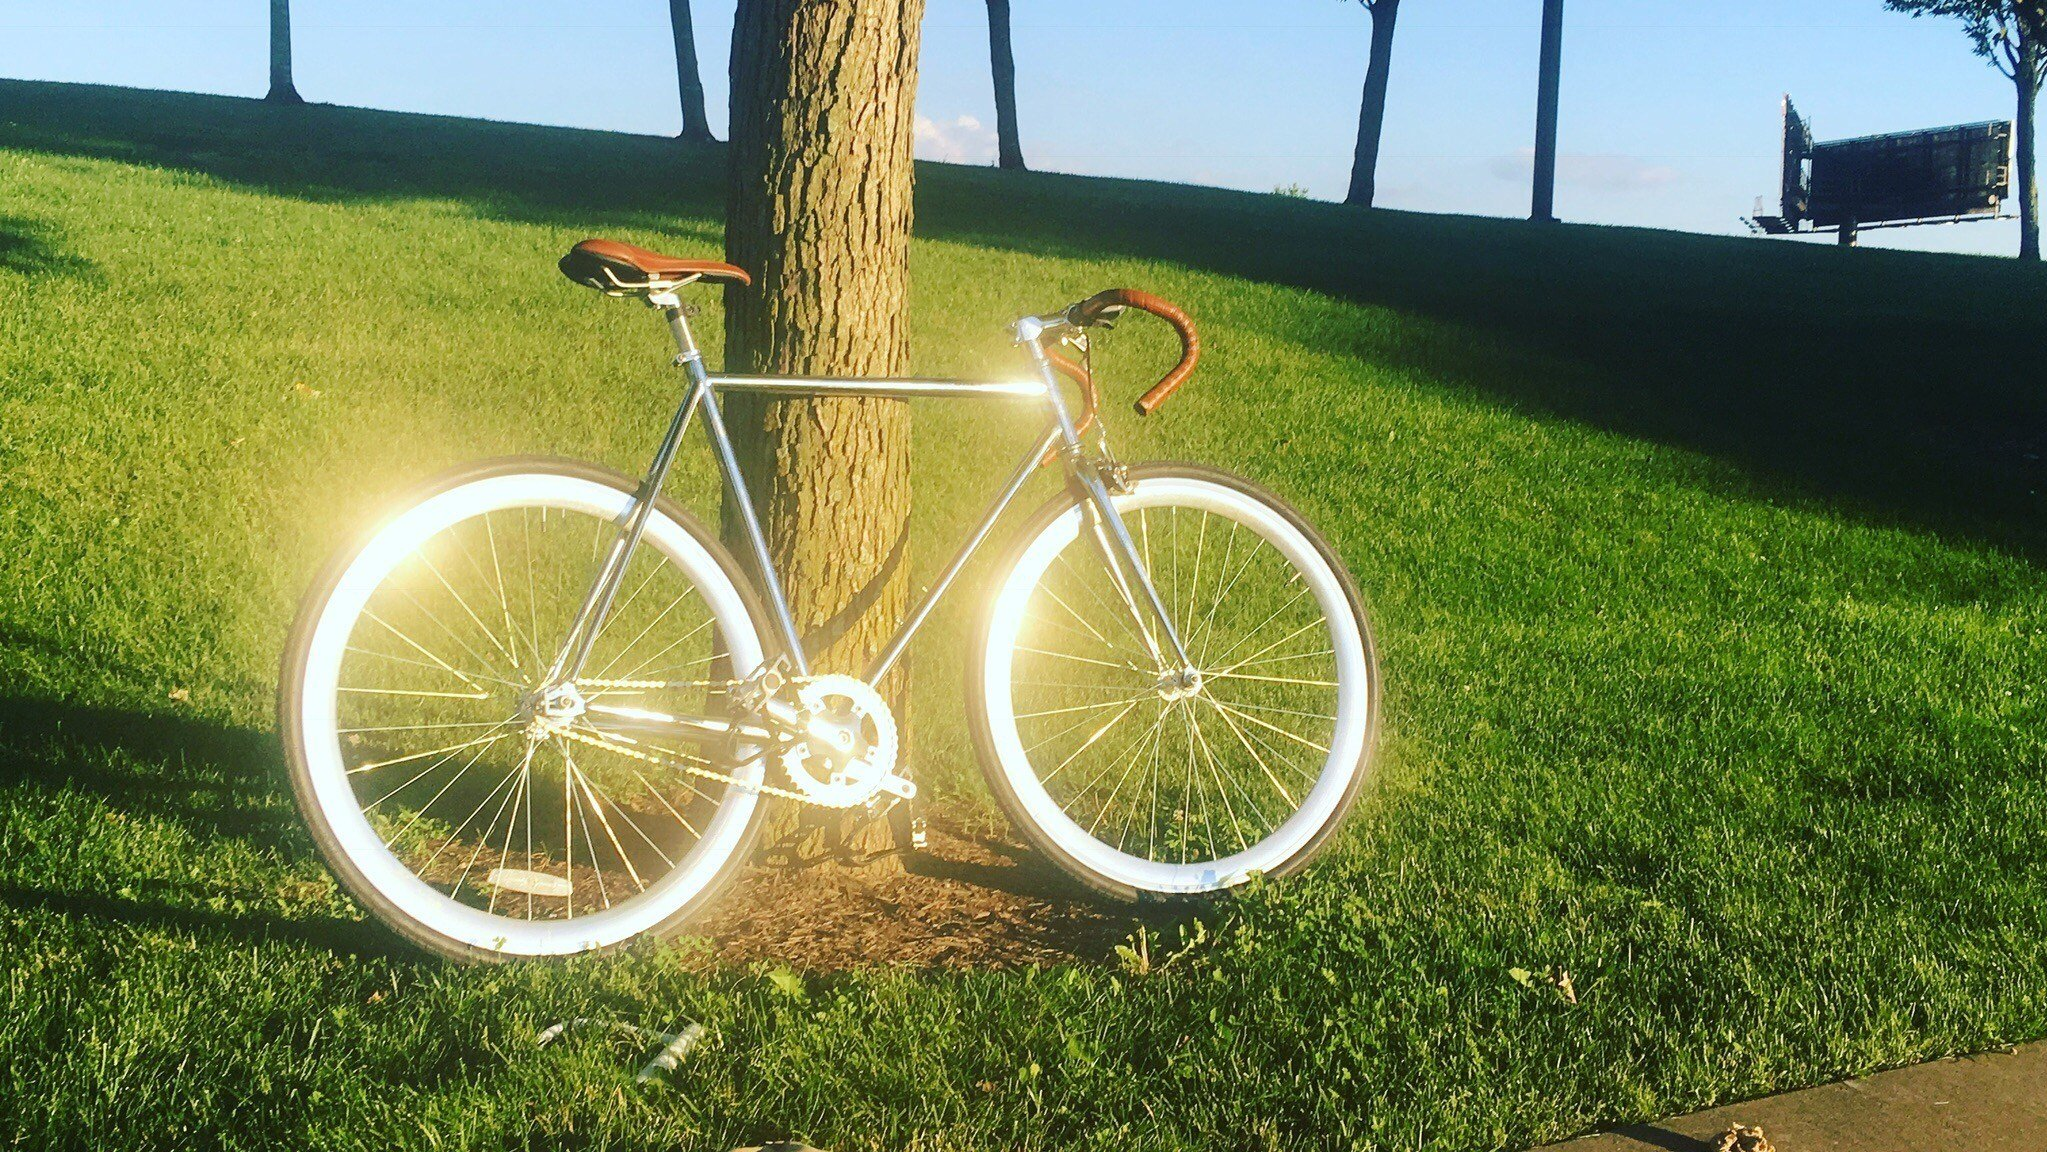 Porter's bike that was stolen